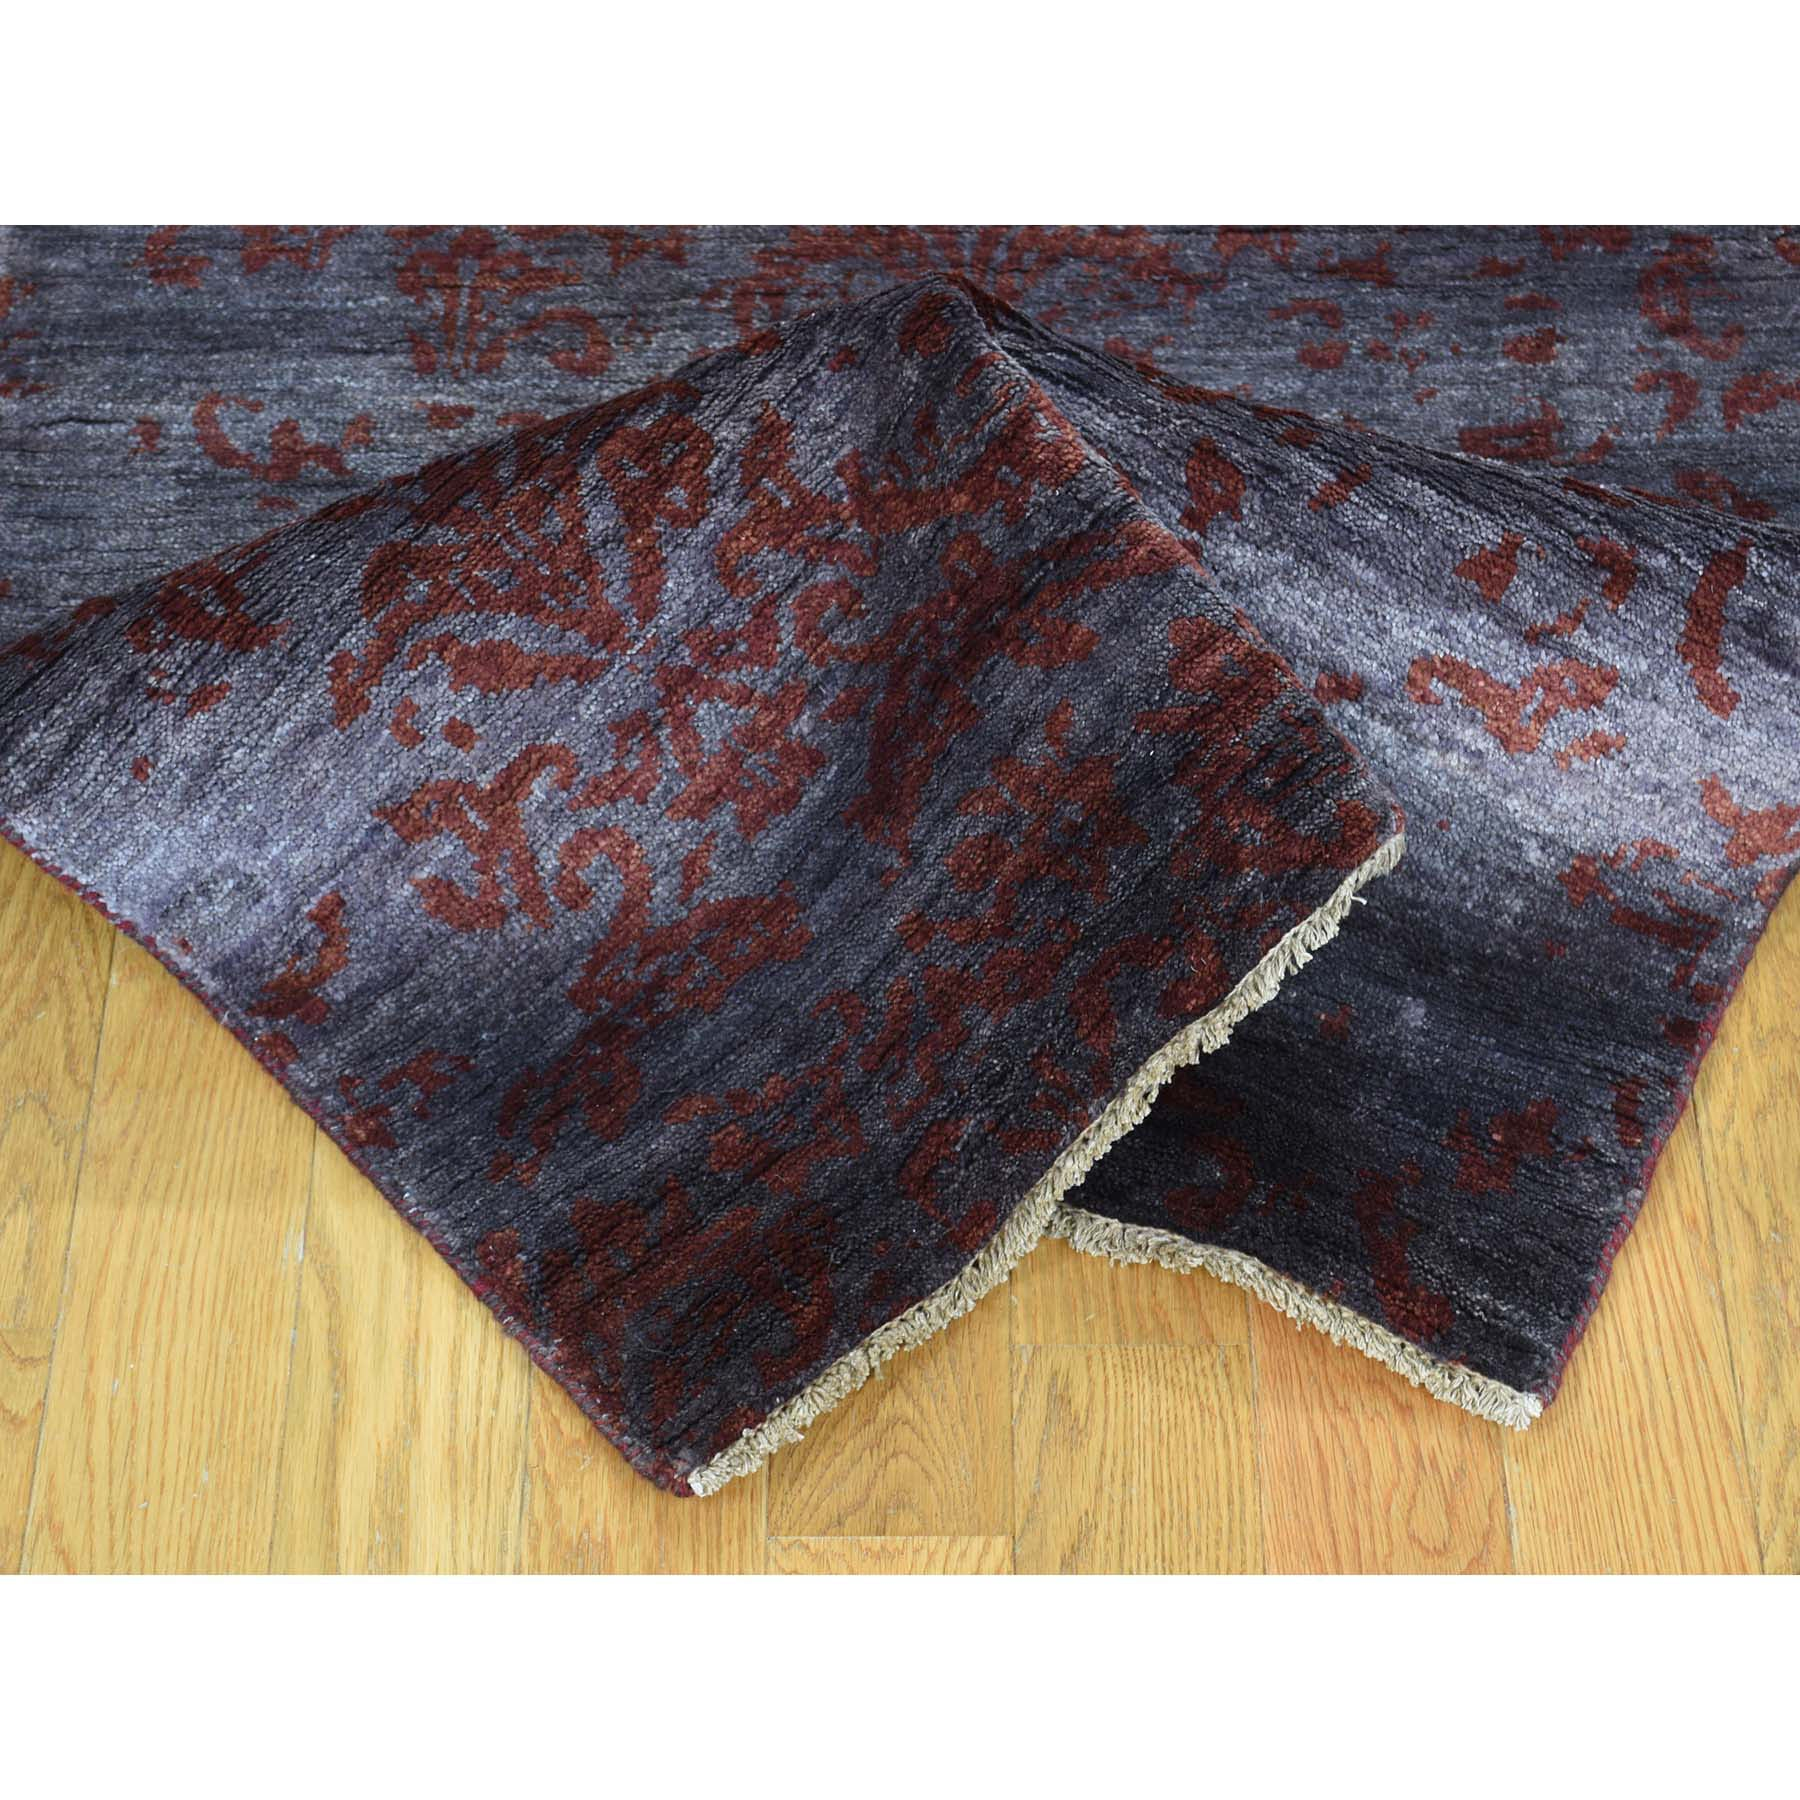 "Handmade Modern and Contemporary Runner Rug > Design# SH31803 > Size: 2'-7"" x 9'-9"" [ONLINE ONLY]"